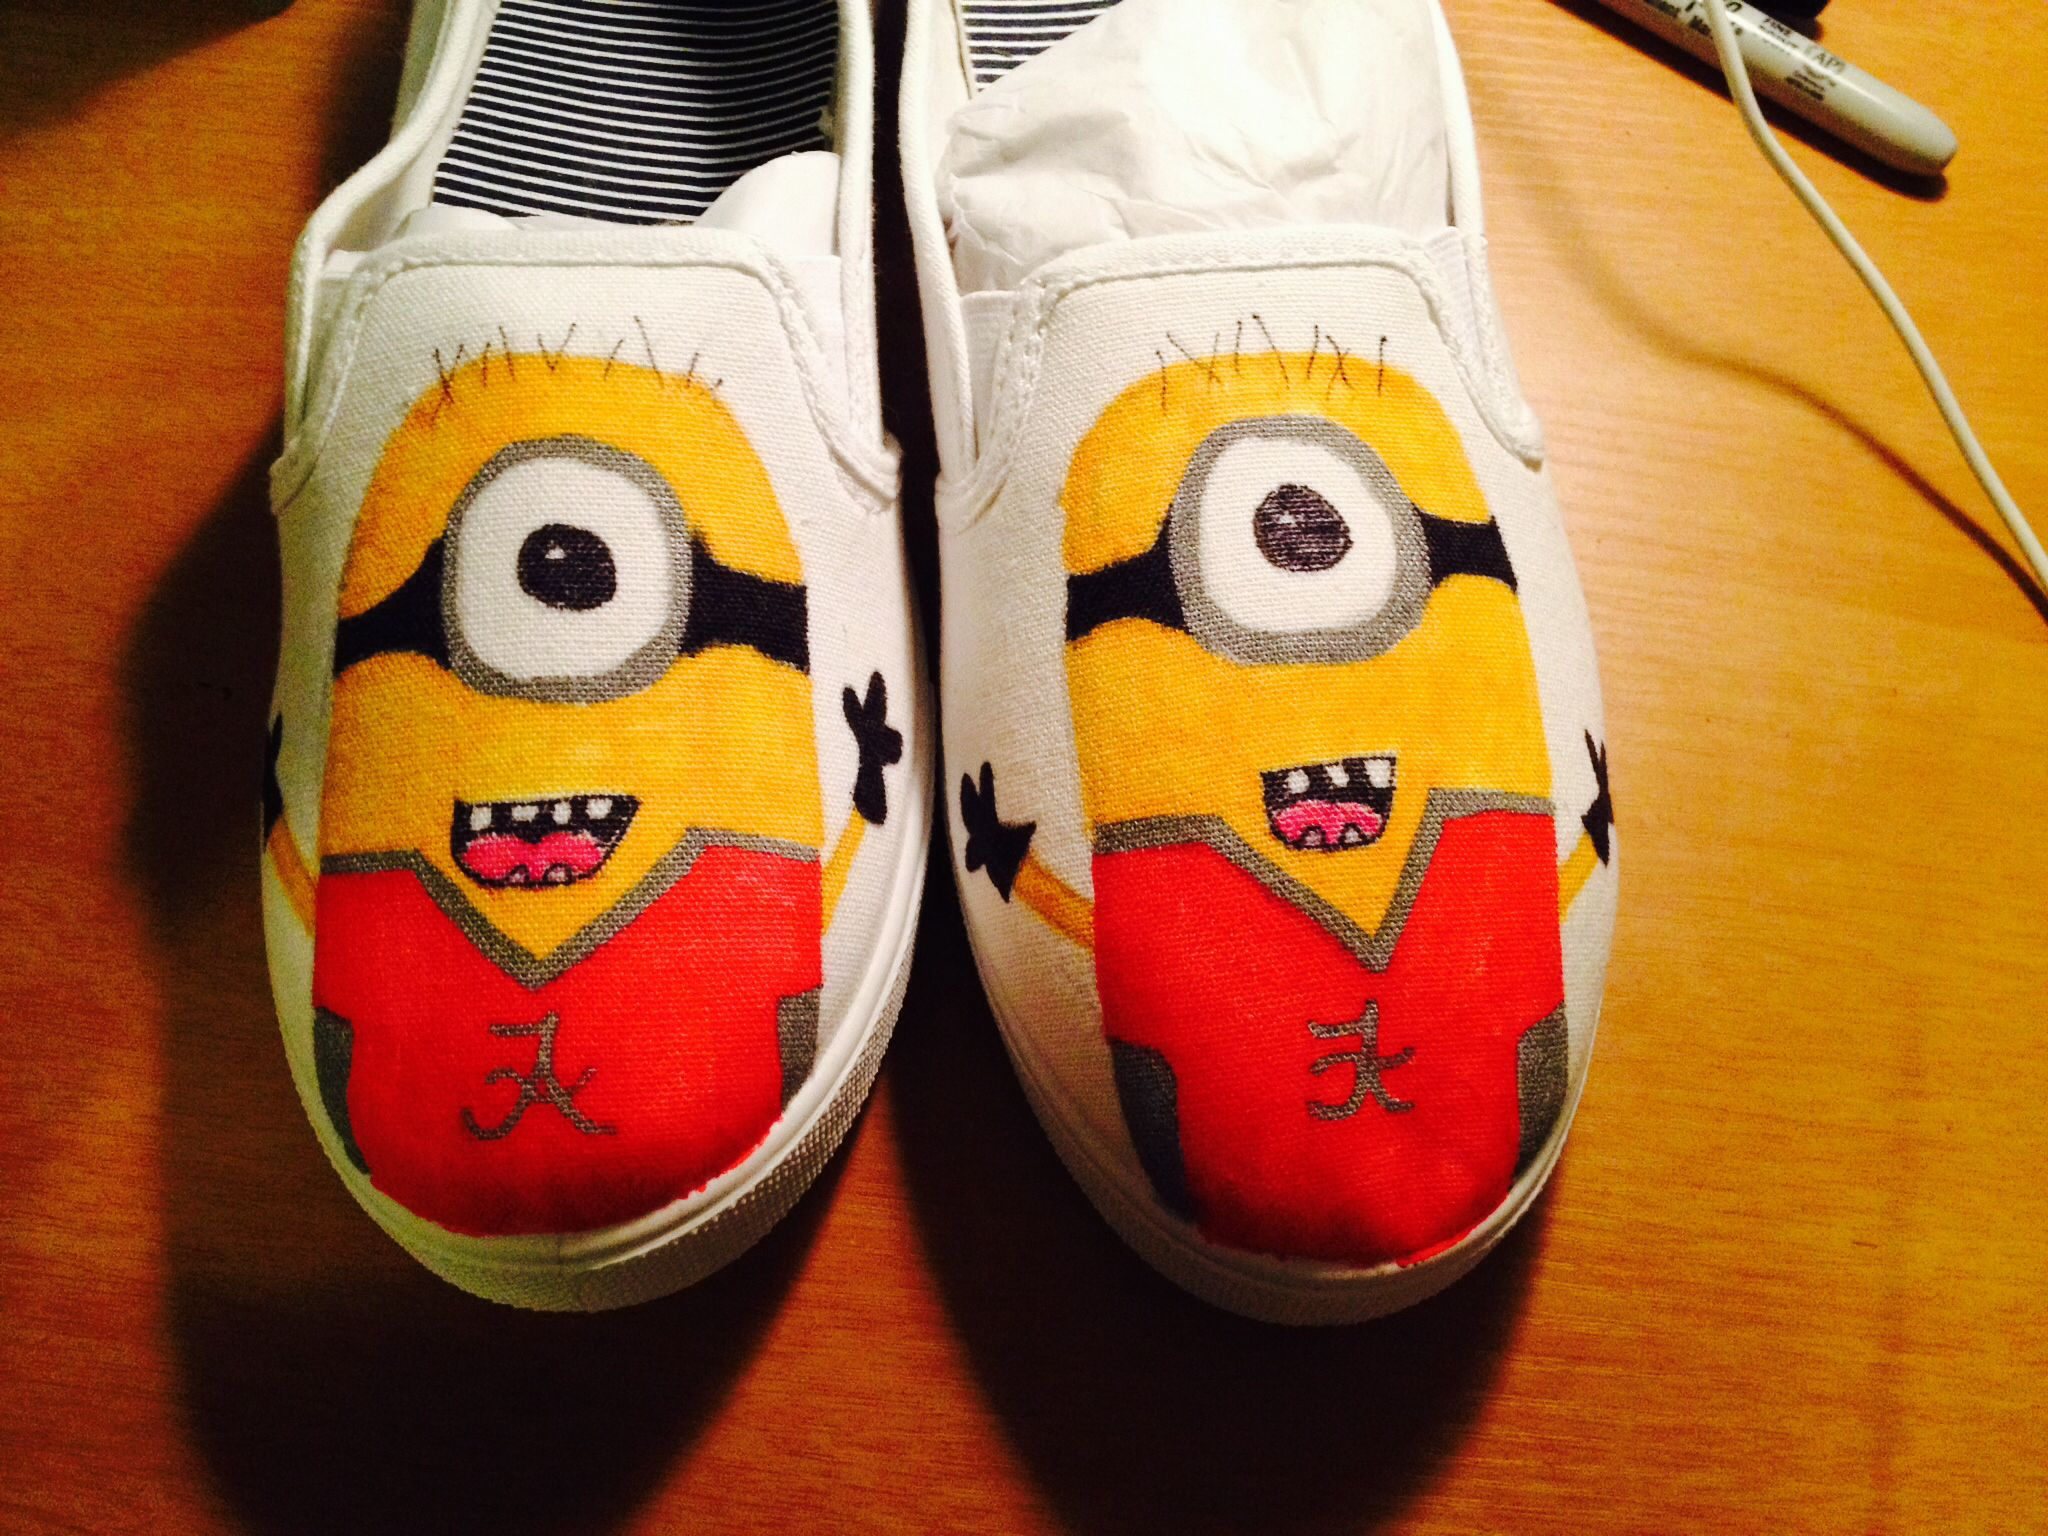 I made these Roll Tide Minions myself. Used magic markers and $6 shoes from Walmart :)